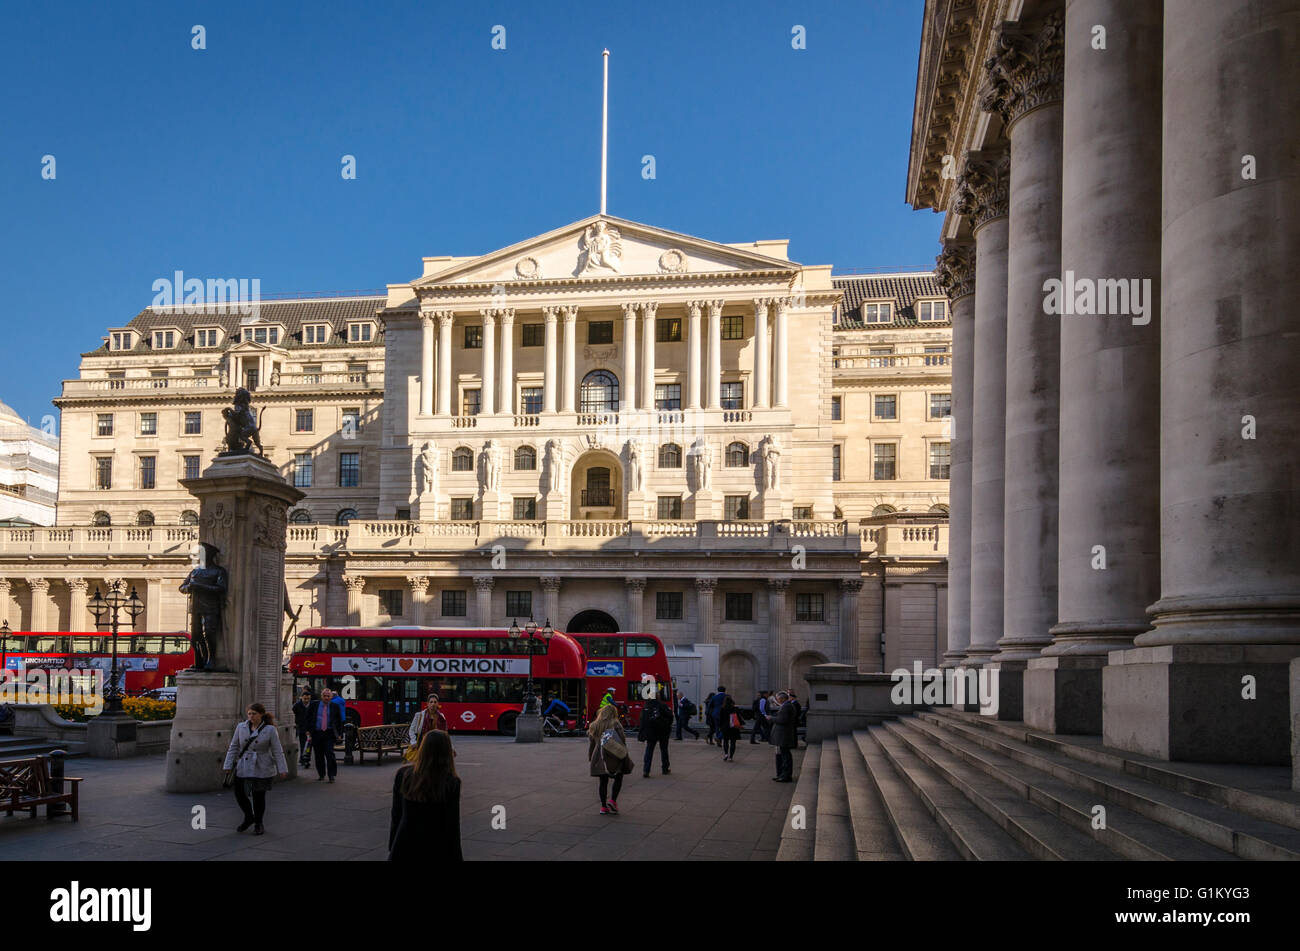 Banque d'Angleterre, Londres, UK Photo Stock